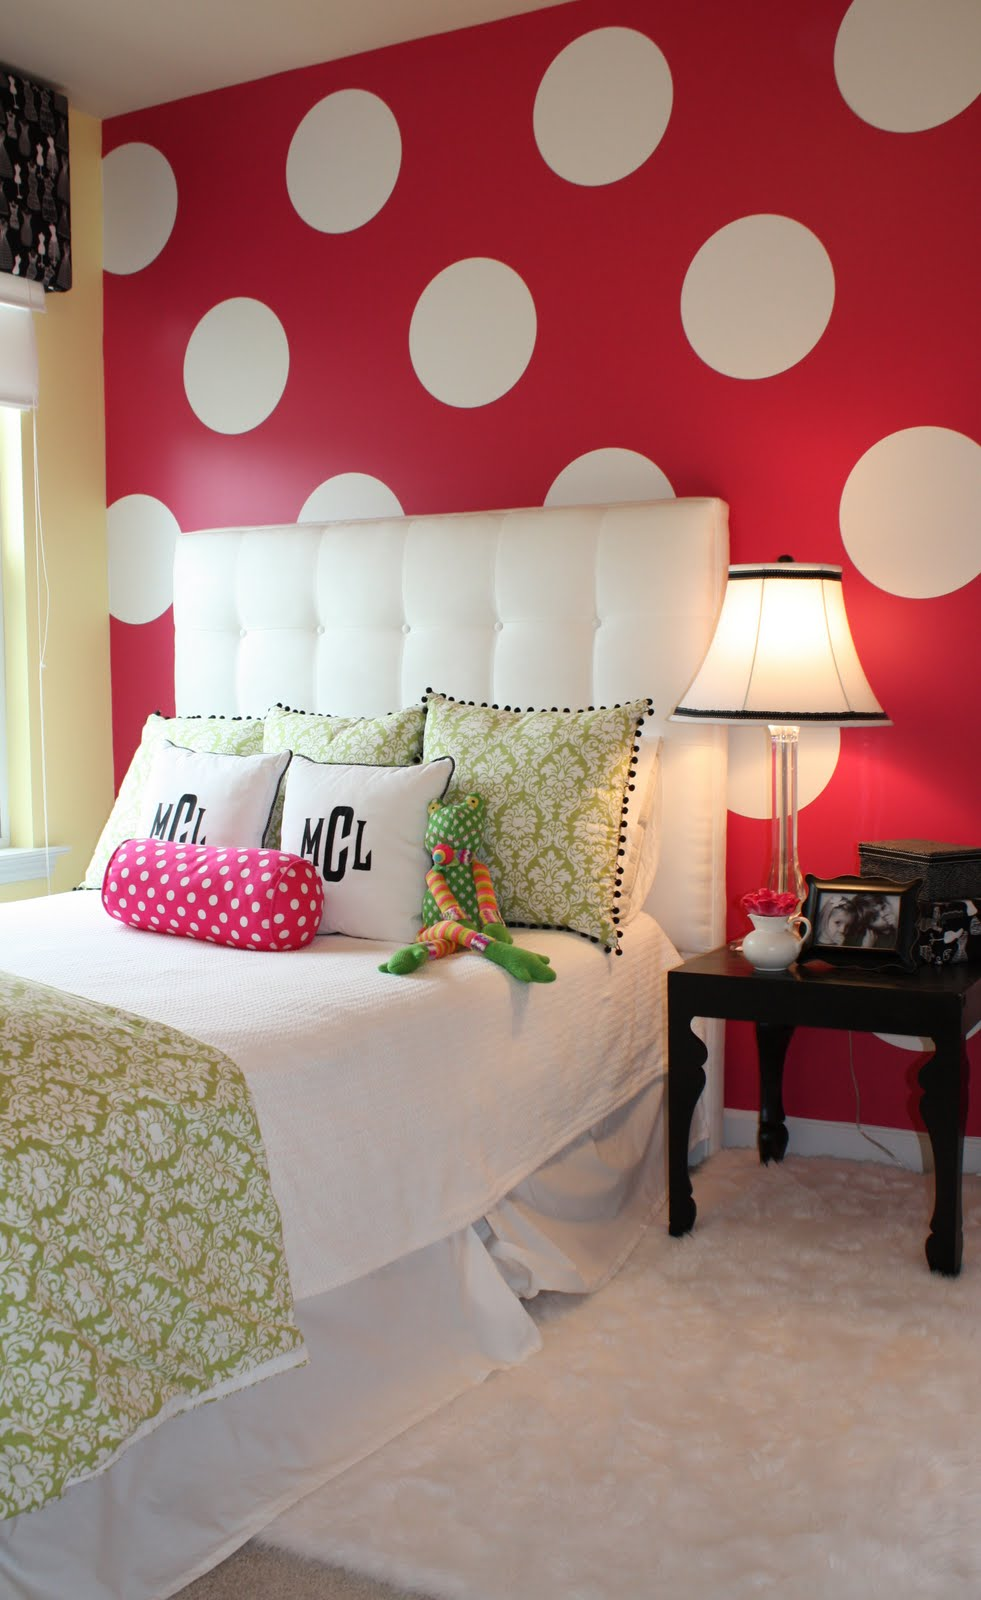 Bedroom designs for teenagers red - 17 Best Images About Ideas For Shelby S Minnie Mouse Bedroom On Pinterest Disney Childs Bedroom And Minnie Mouse Bedding